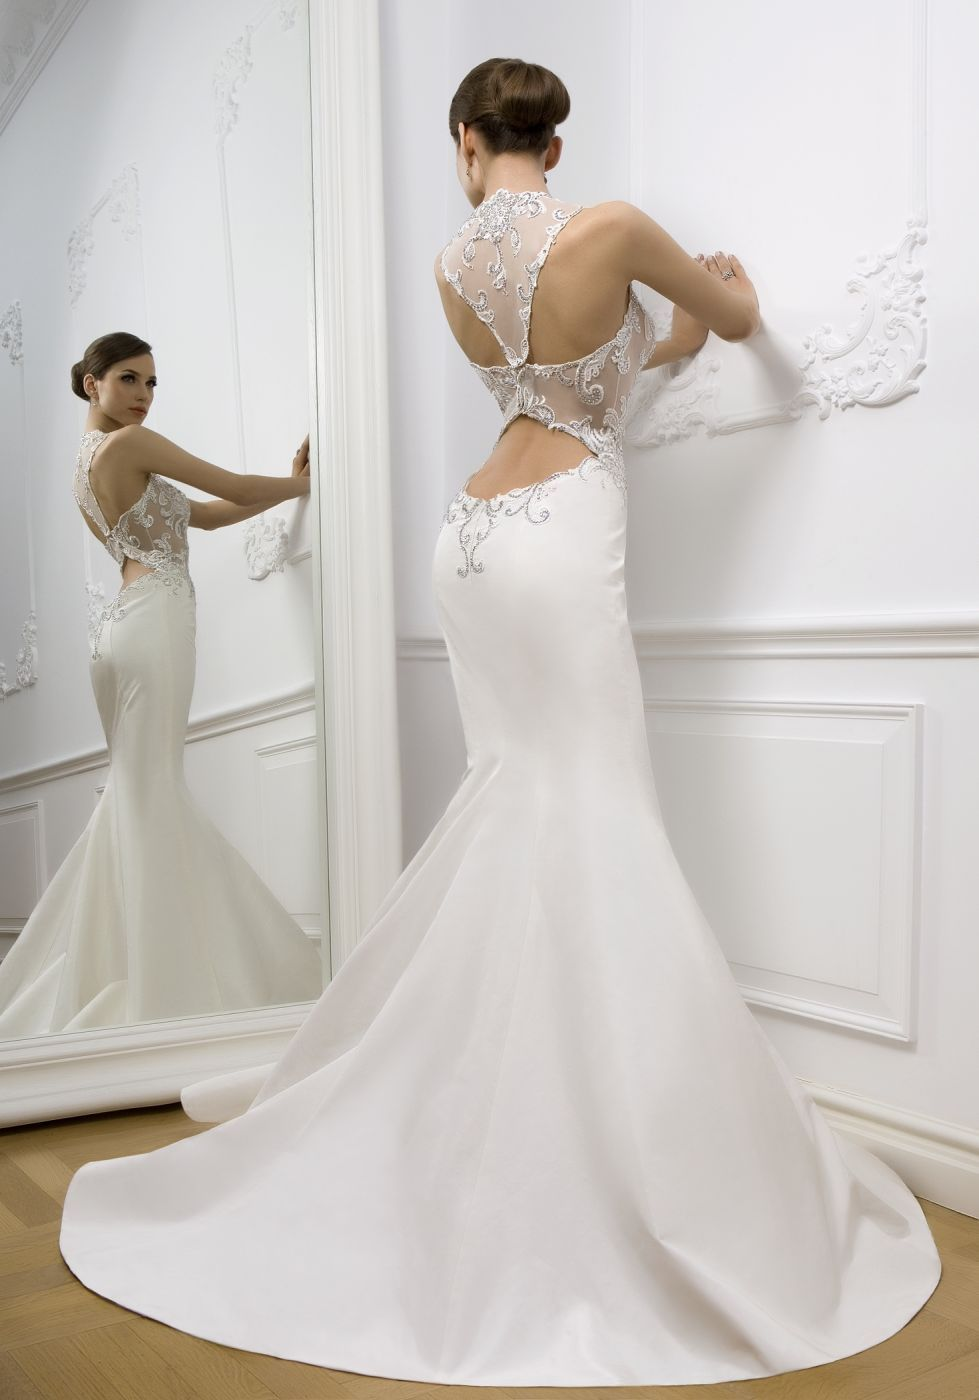 Back to Back Bewitchment   Gowns, Wedding dress and Weddings